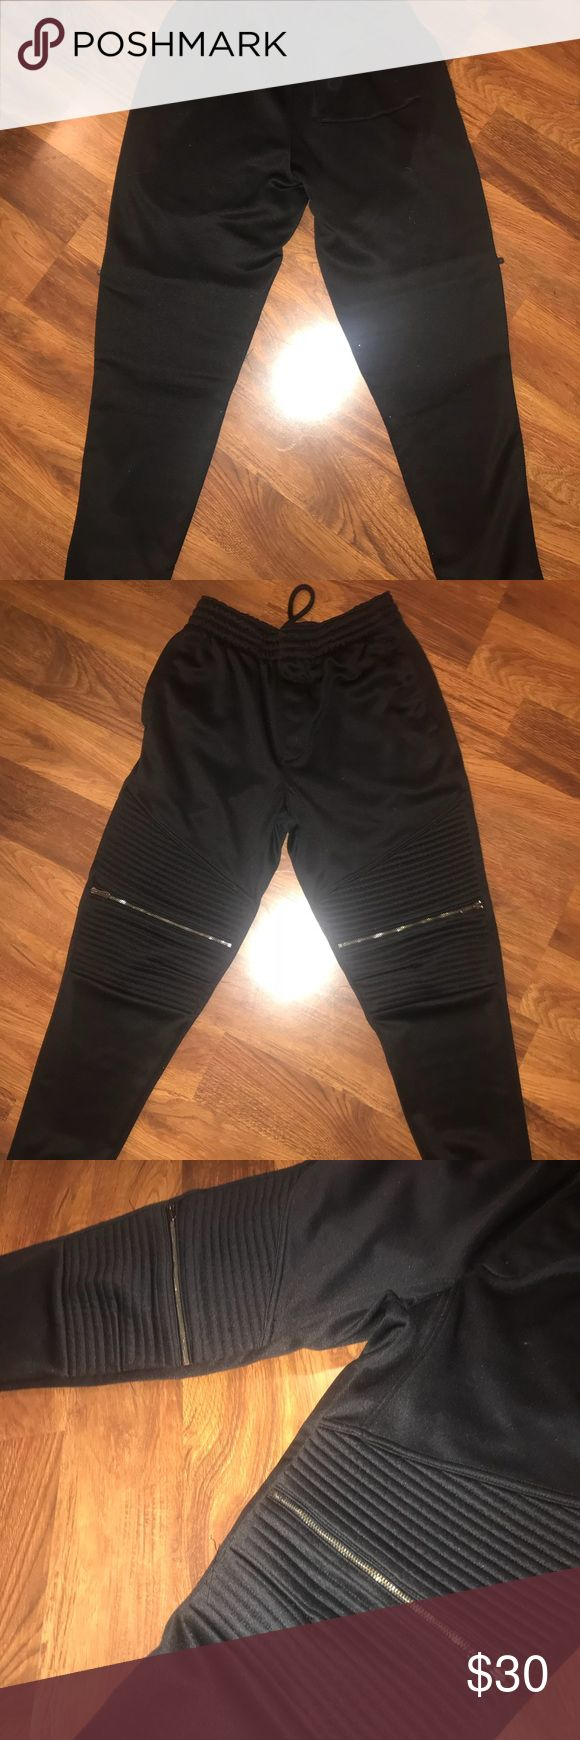 Champs men's black joggers with zippers size small Black, gently used men's joggers. Size small. Really comfy! No tears or stains. From Champs. Pants Sweatpants & Joggers